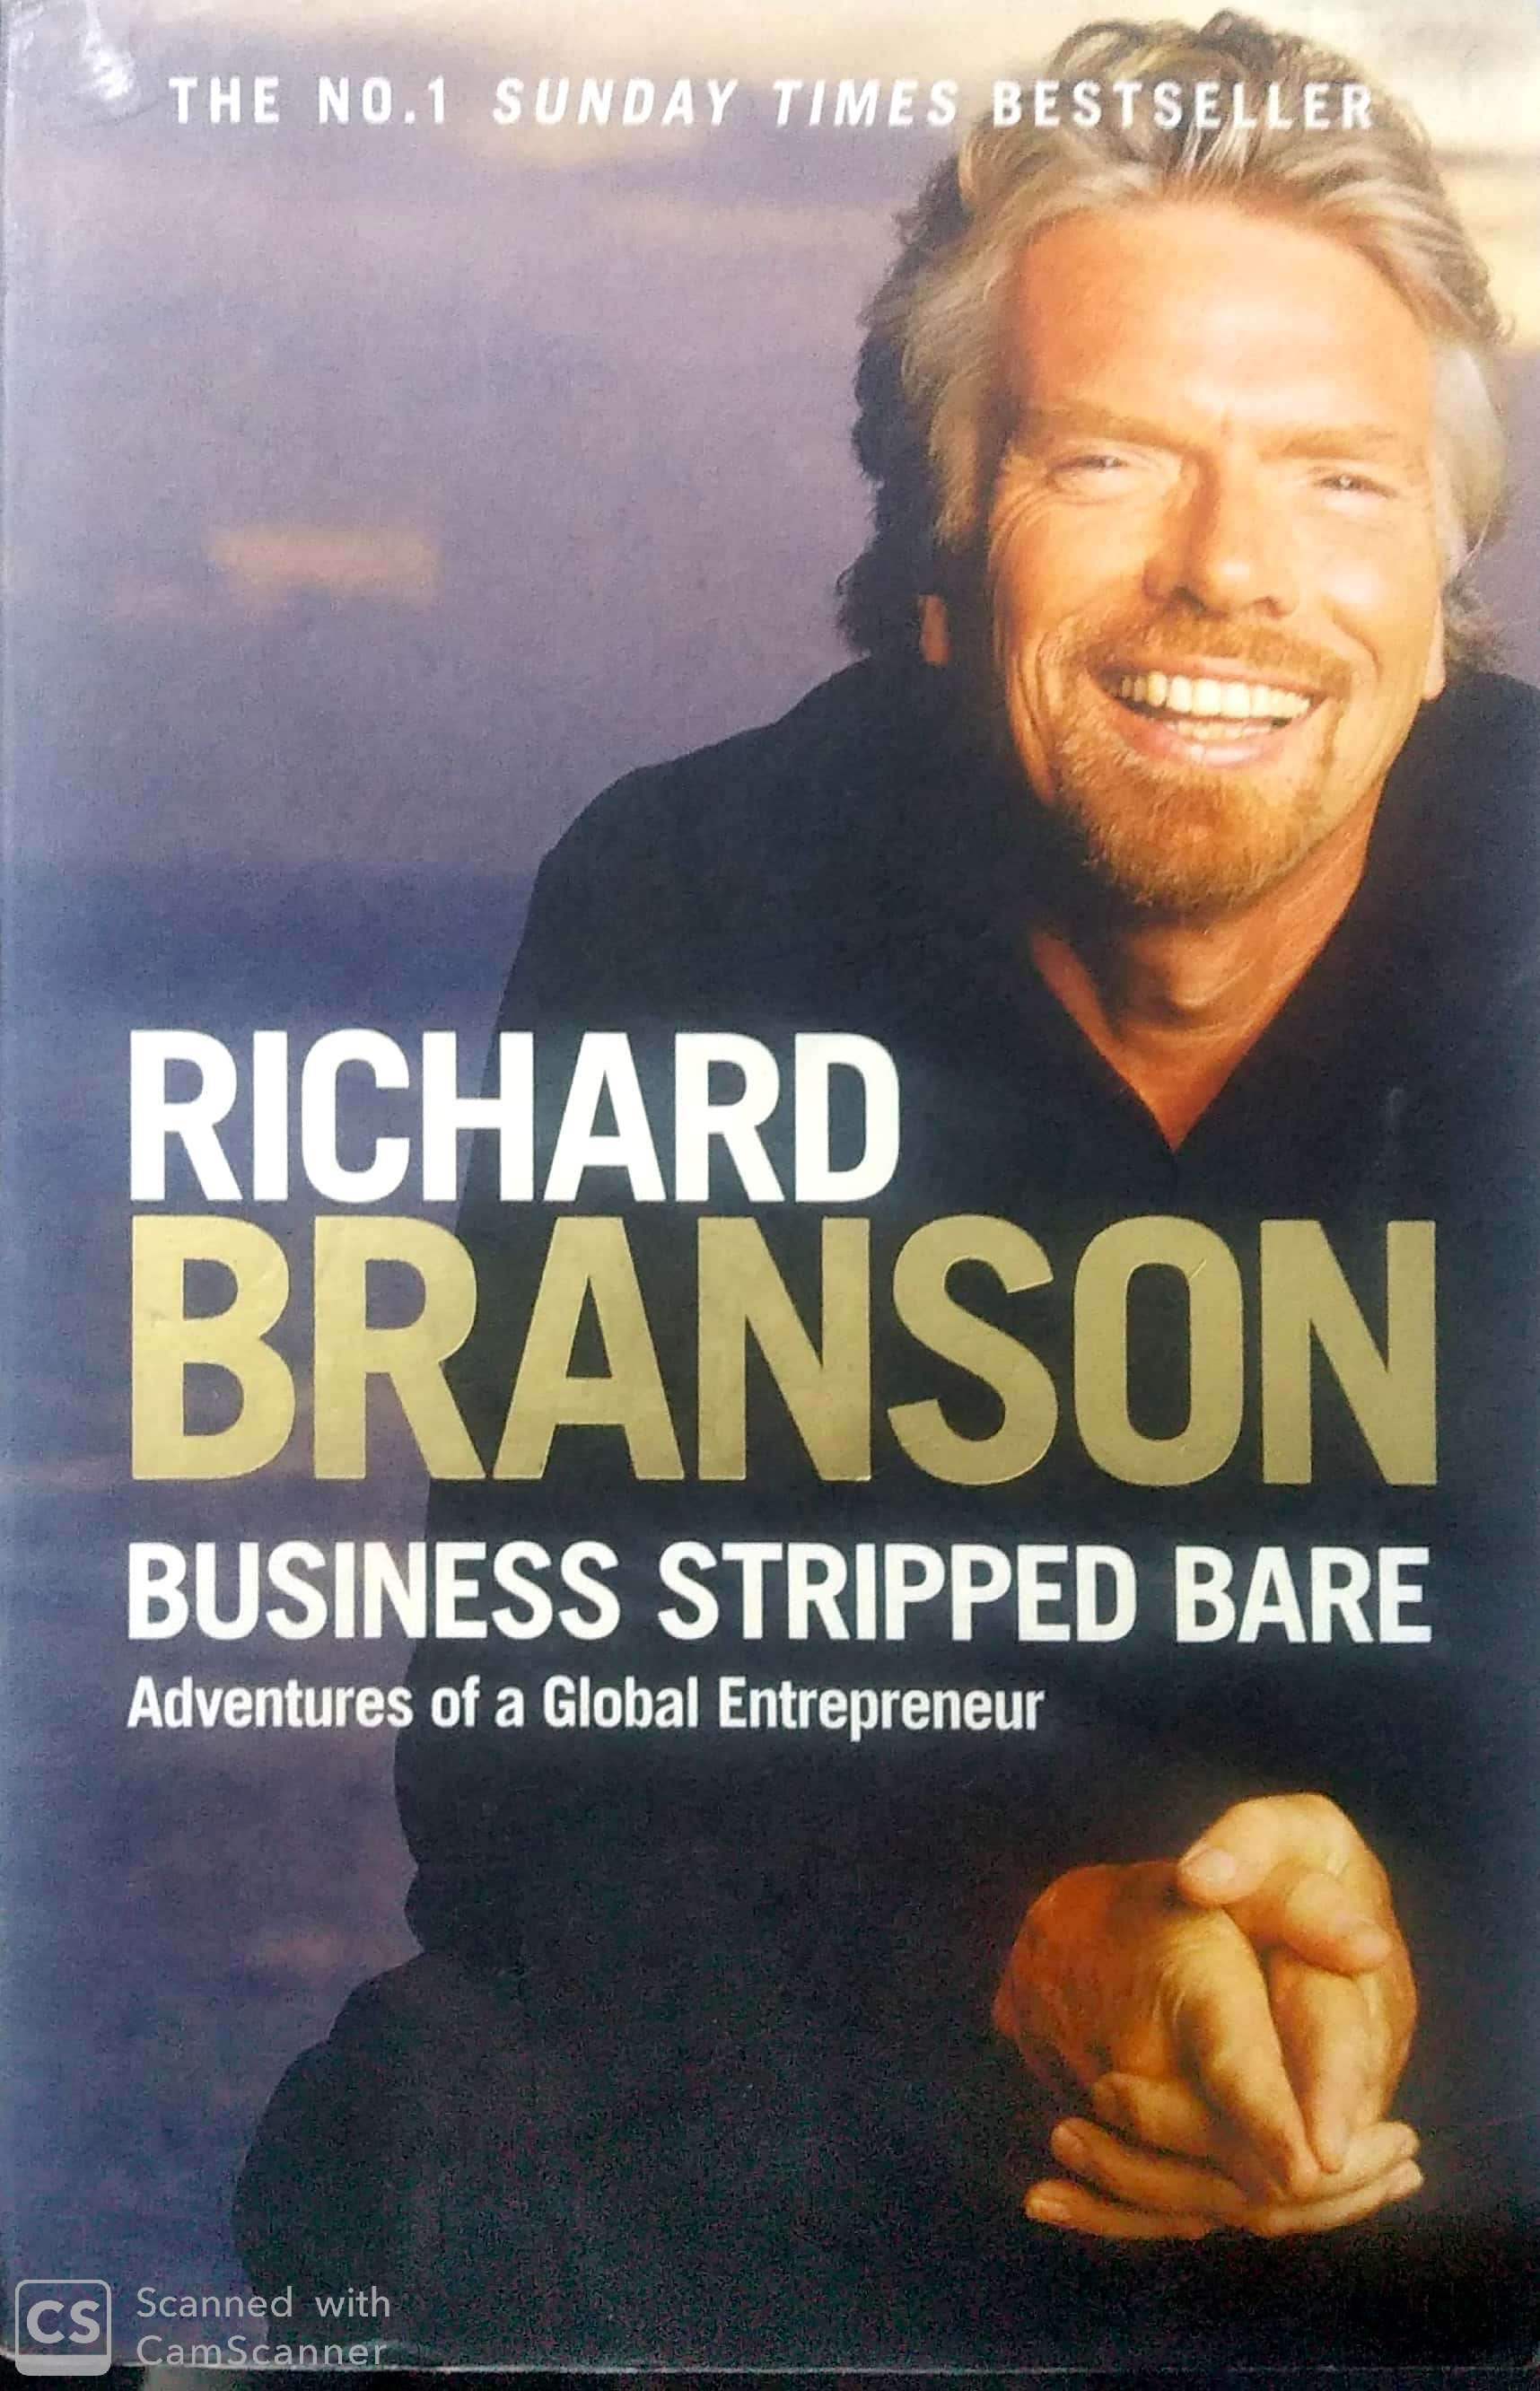 Business Stripped Bare UK edition: Adventures of a Global Entrepreneur